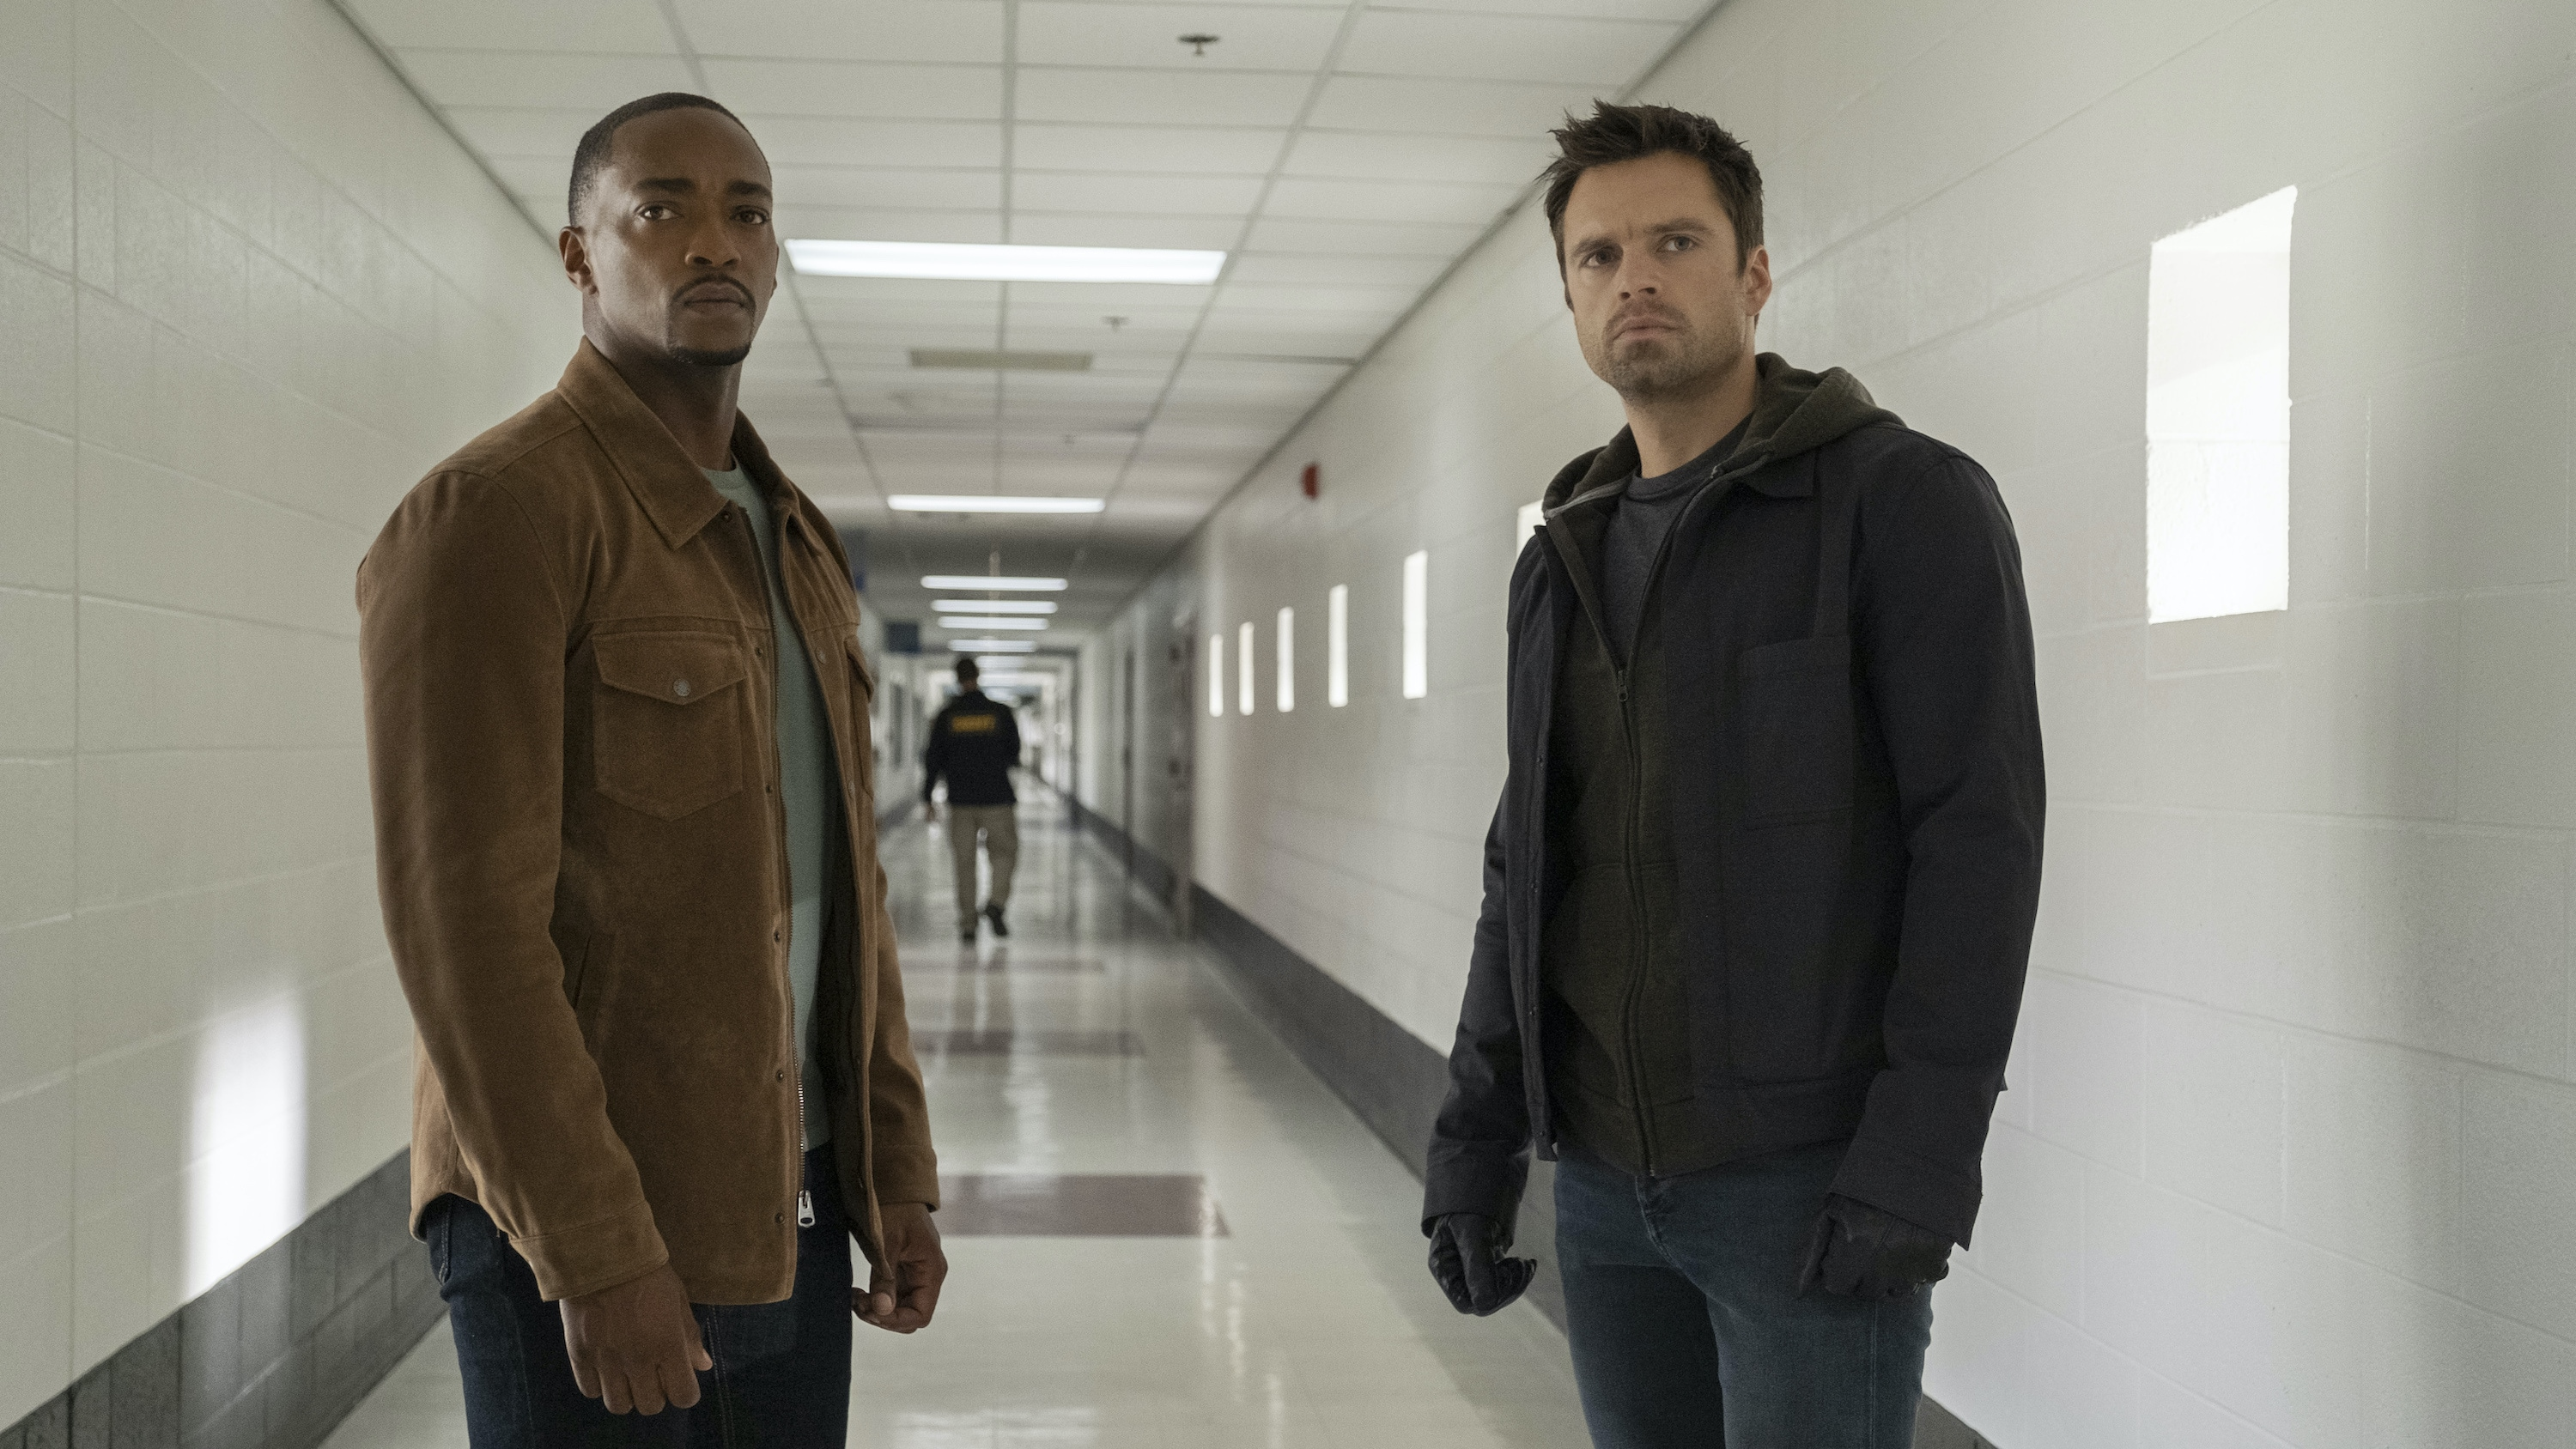 (L-R): Falcon/Sam Wilson (Anthony Mackie) and Winter Soldier/Bucky Barnes (Sebastian Stan) in Marvel Studios' THE FALCON AND THE WINTER SOLDIER exclusively on Disney+. Photo by Chuck Zlotnick. ©Marvel Studios 2020. All Rights Reserved.